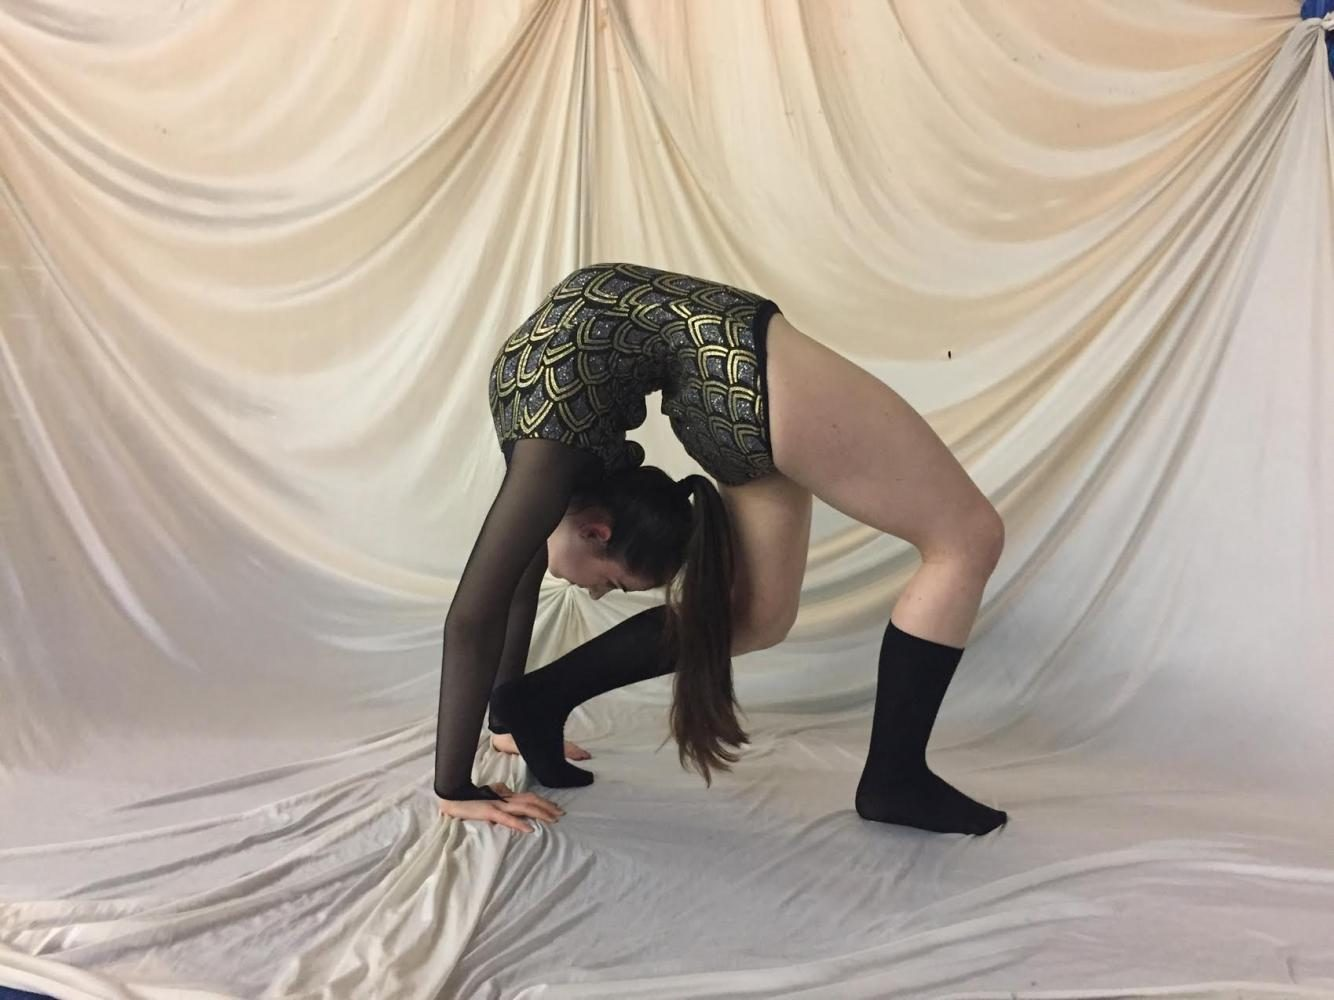 Lapidas twists her way into finding passion for contortion